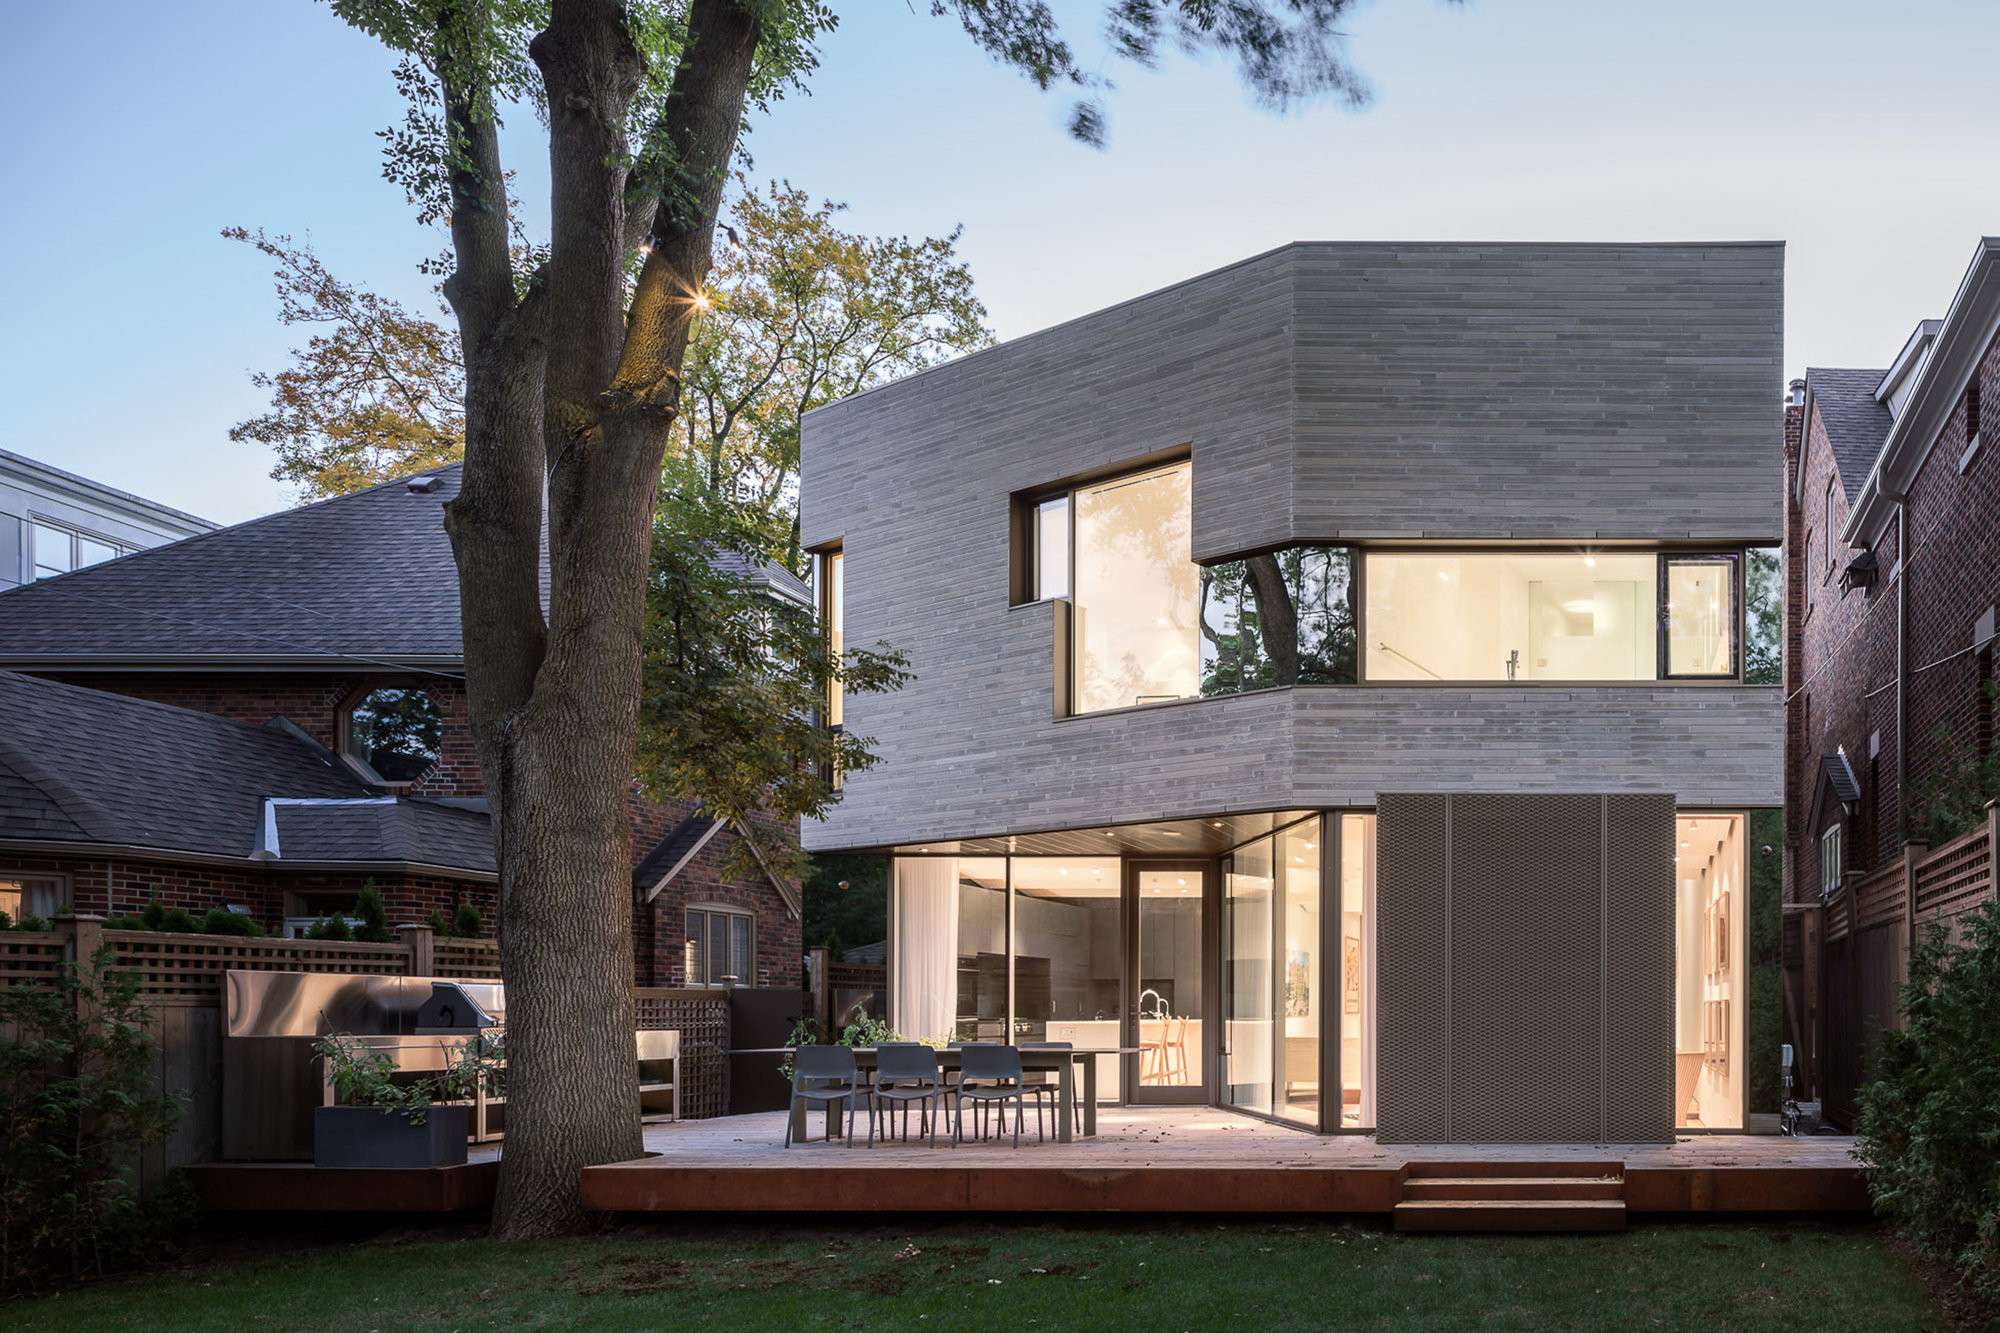 Rosemary House Kohn Shnier Architects Archdaily